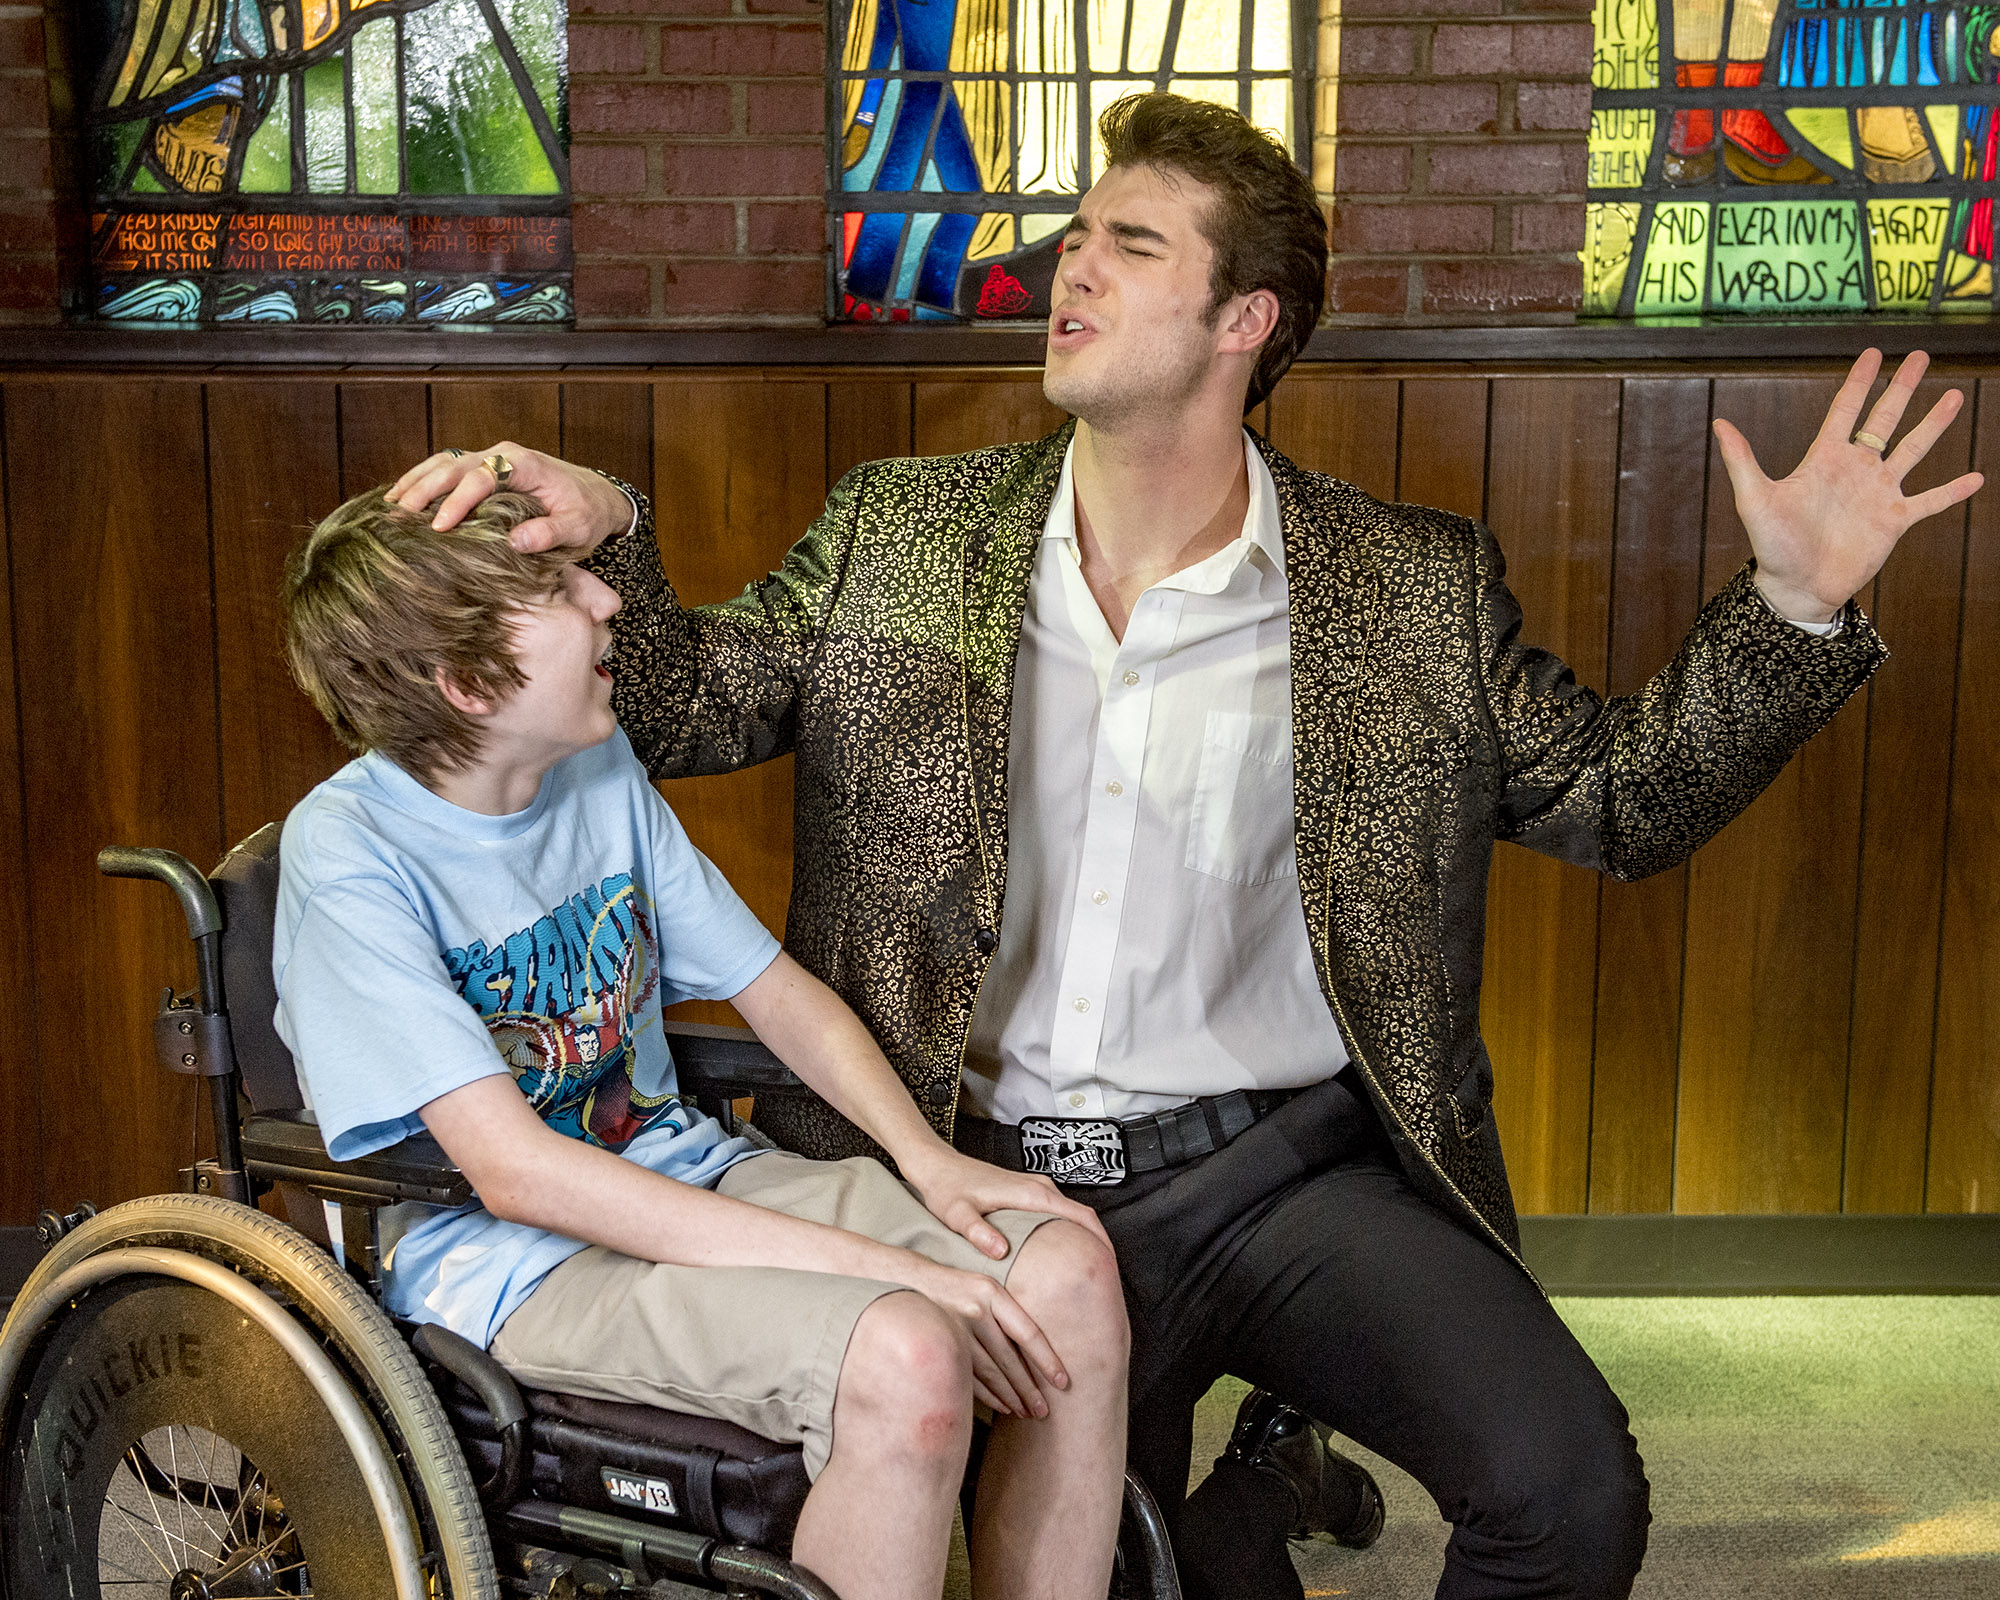 Young boy in wheelchair, left, looks up at singing man, on the right.